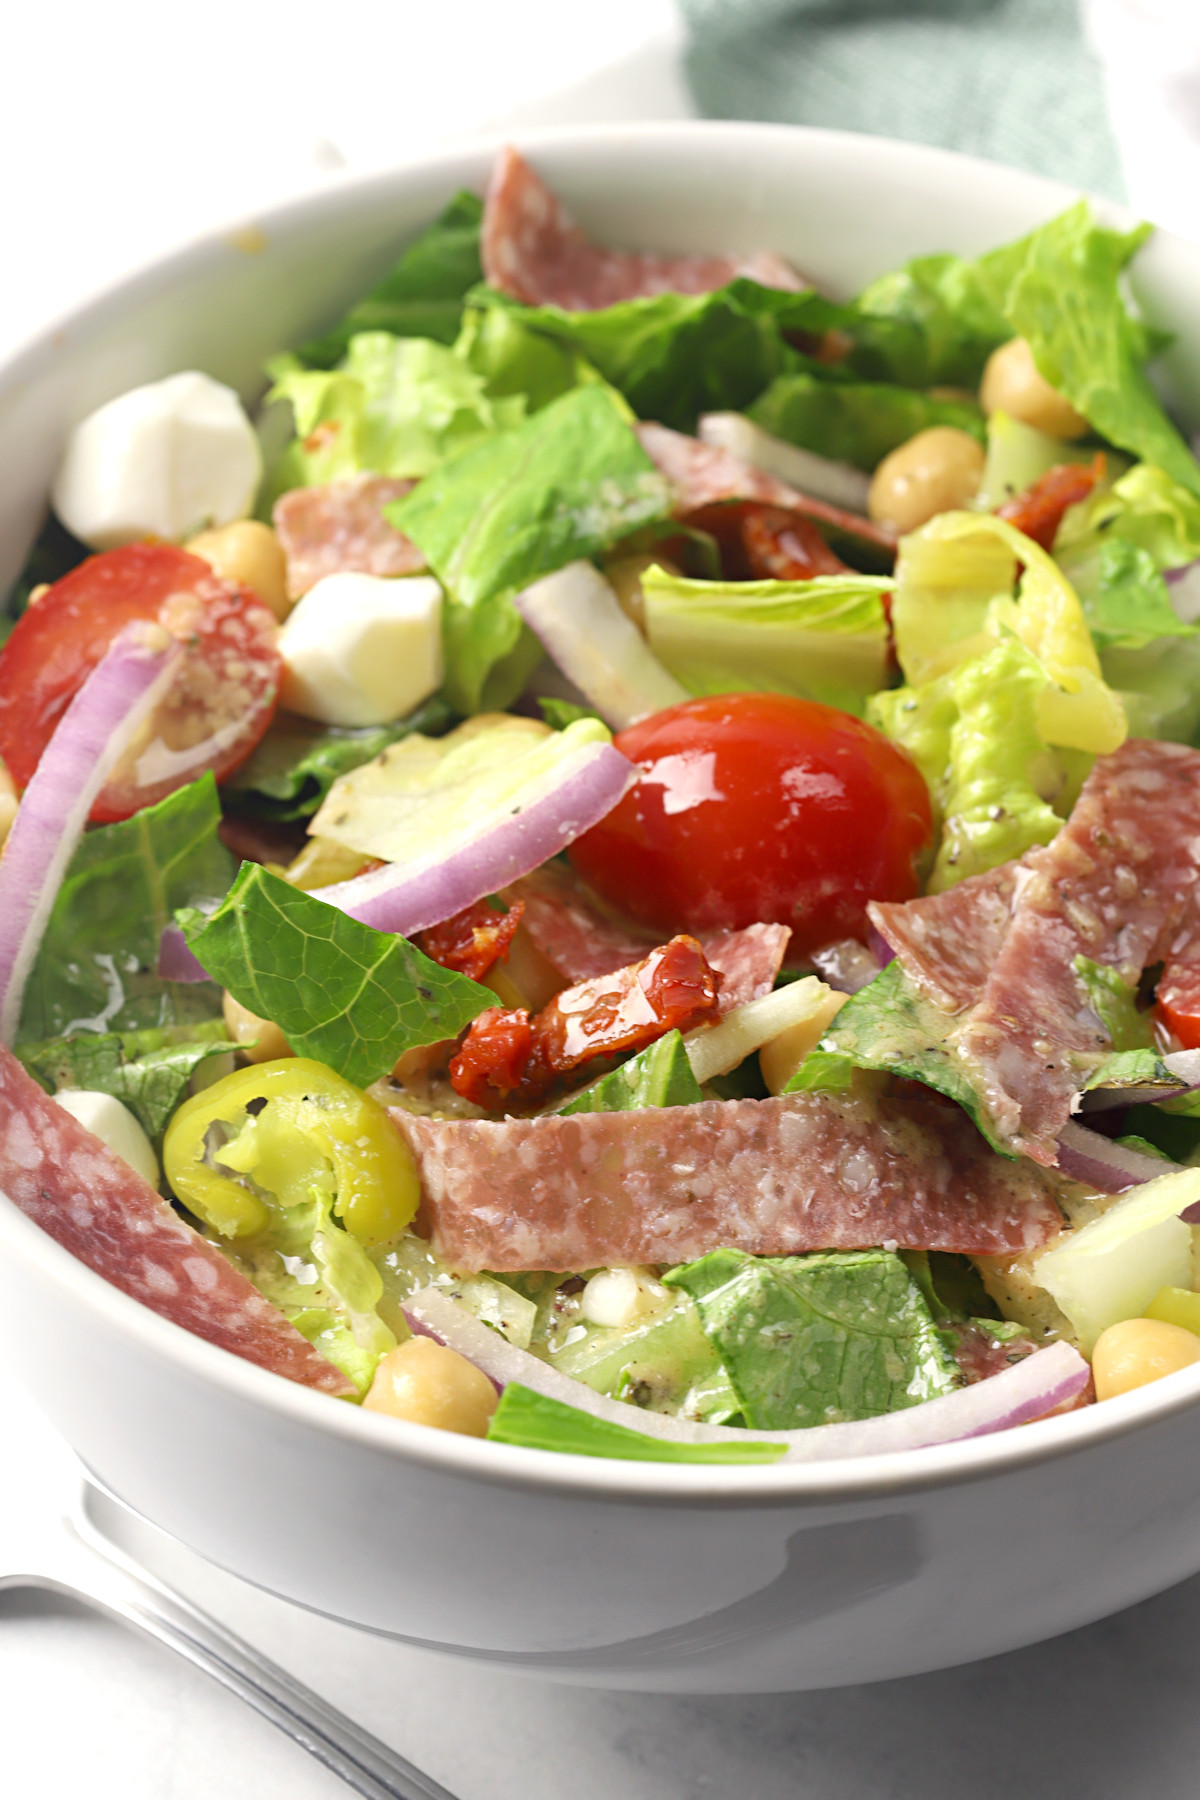 Single serving of chopped salad in a white bowl.